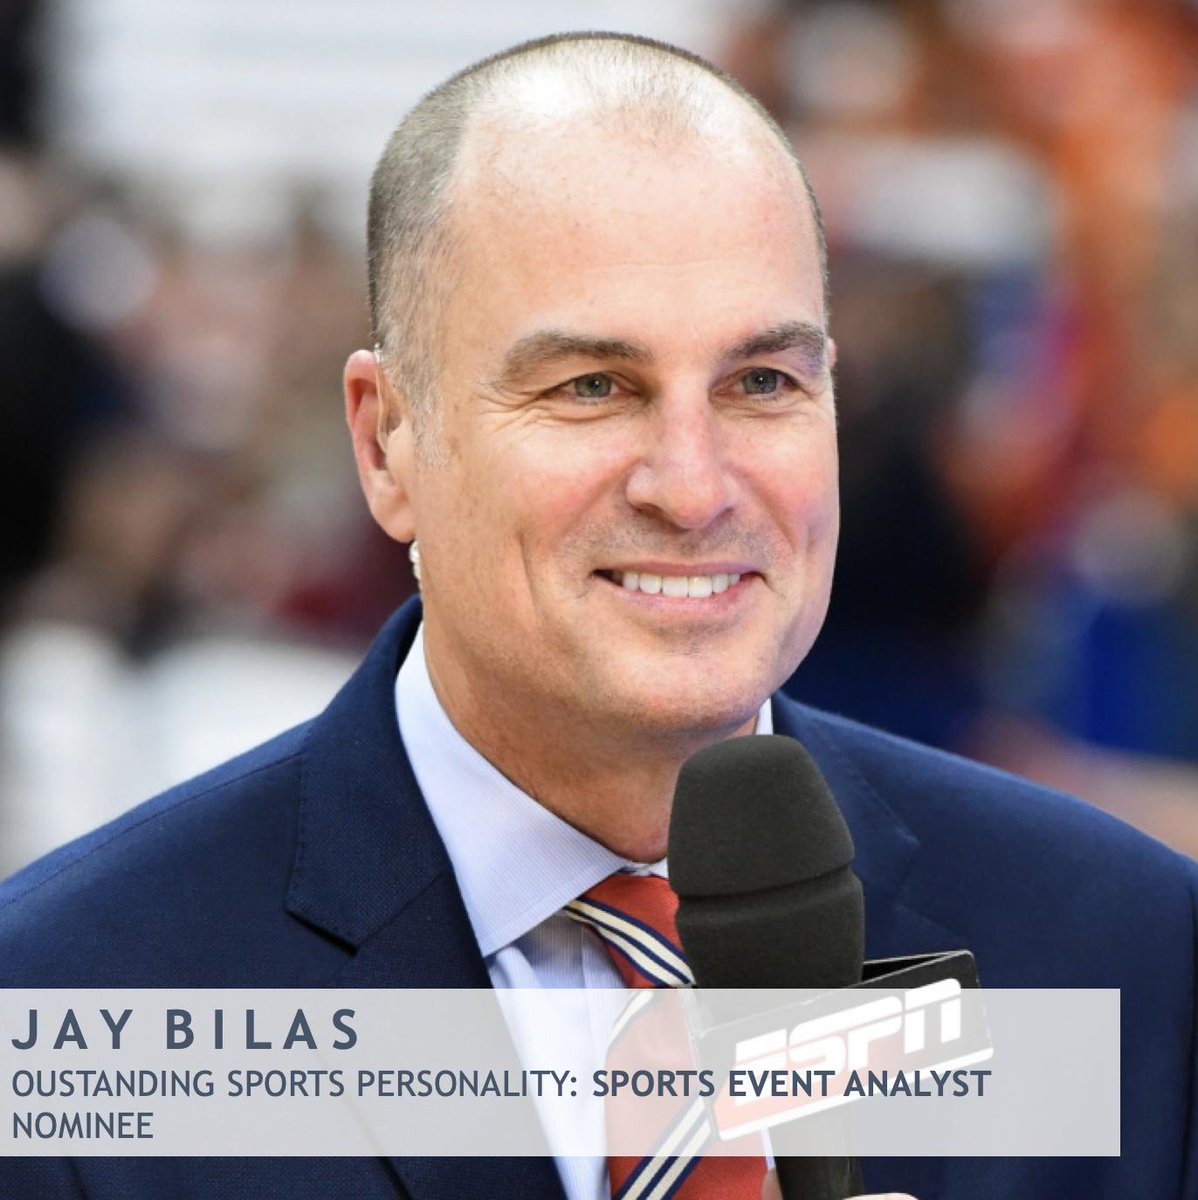 Congrats @JayBilas on the 40th Annual #SportsEmmy Awards nomination as Outstanding Sports Personality in the Sports Event Analyst category! #MontagGroup @espn